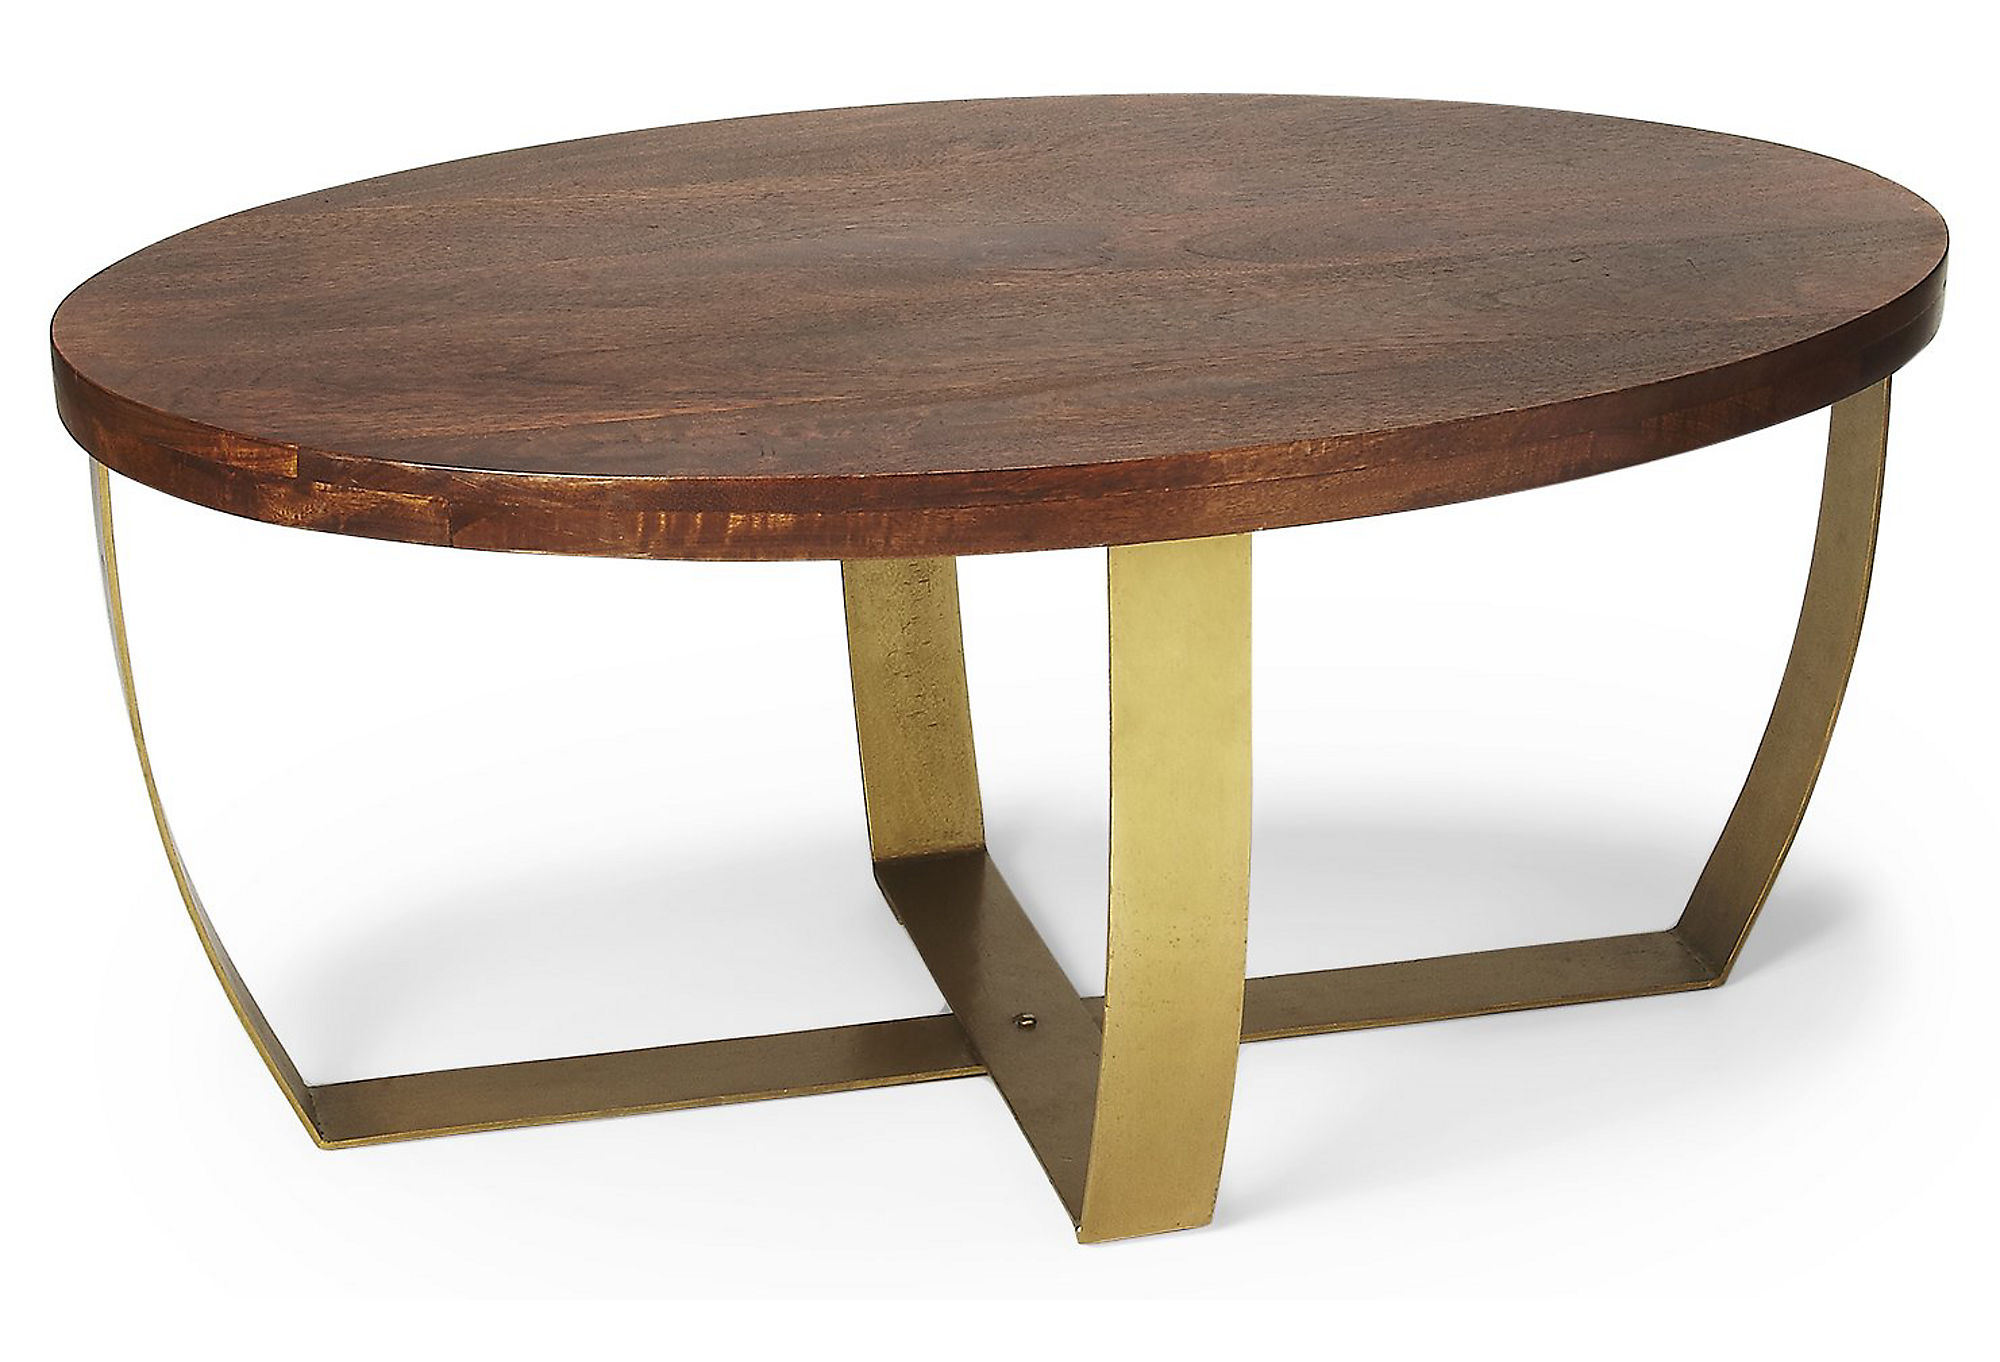 Zula Coffee Table by Uttermost